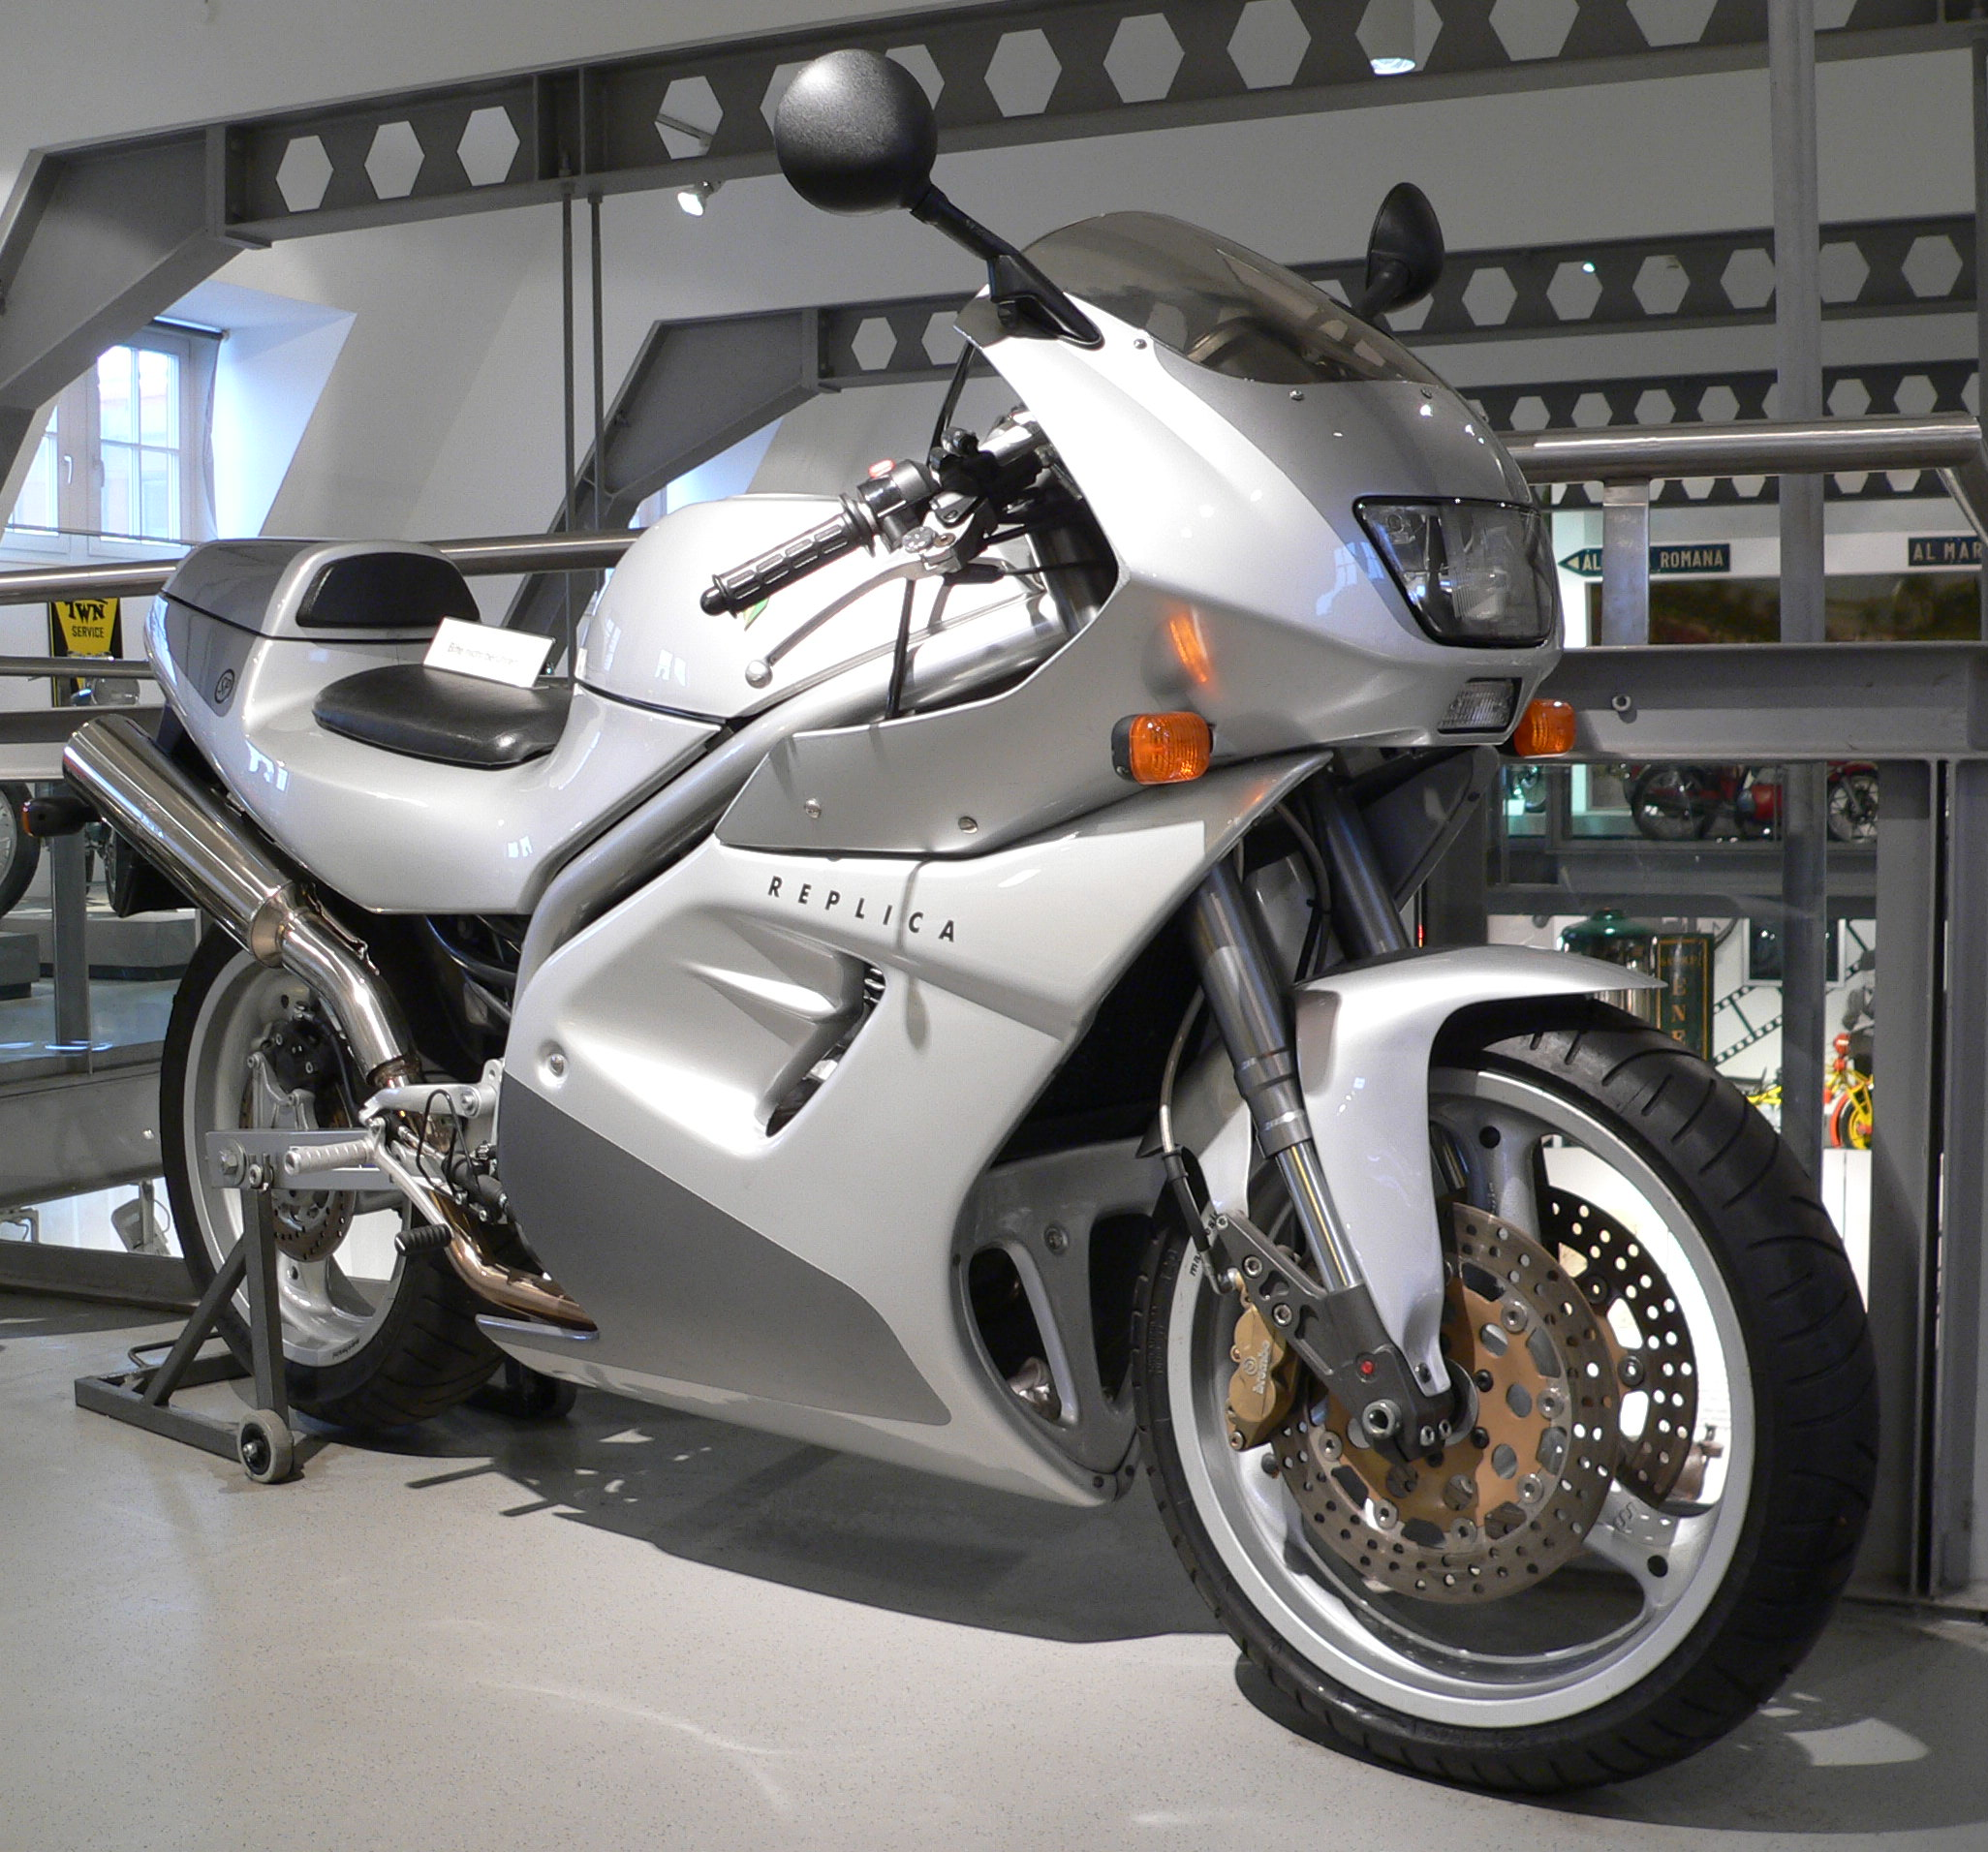 MZ Skorpion 660 Sport 2000 images #116157